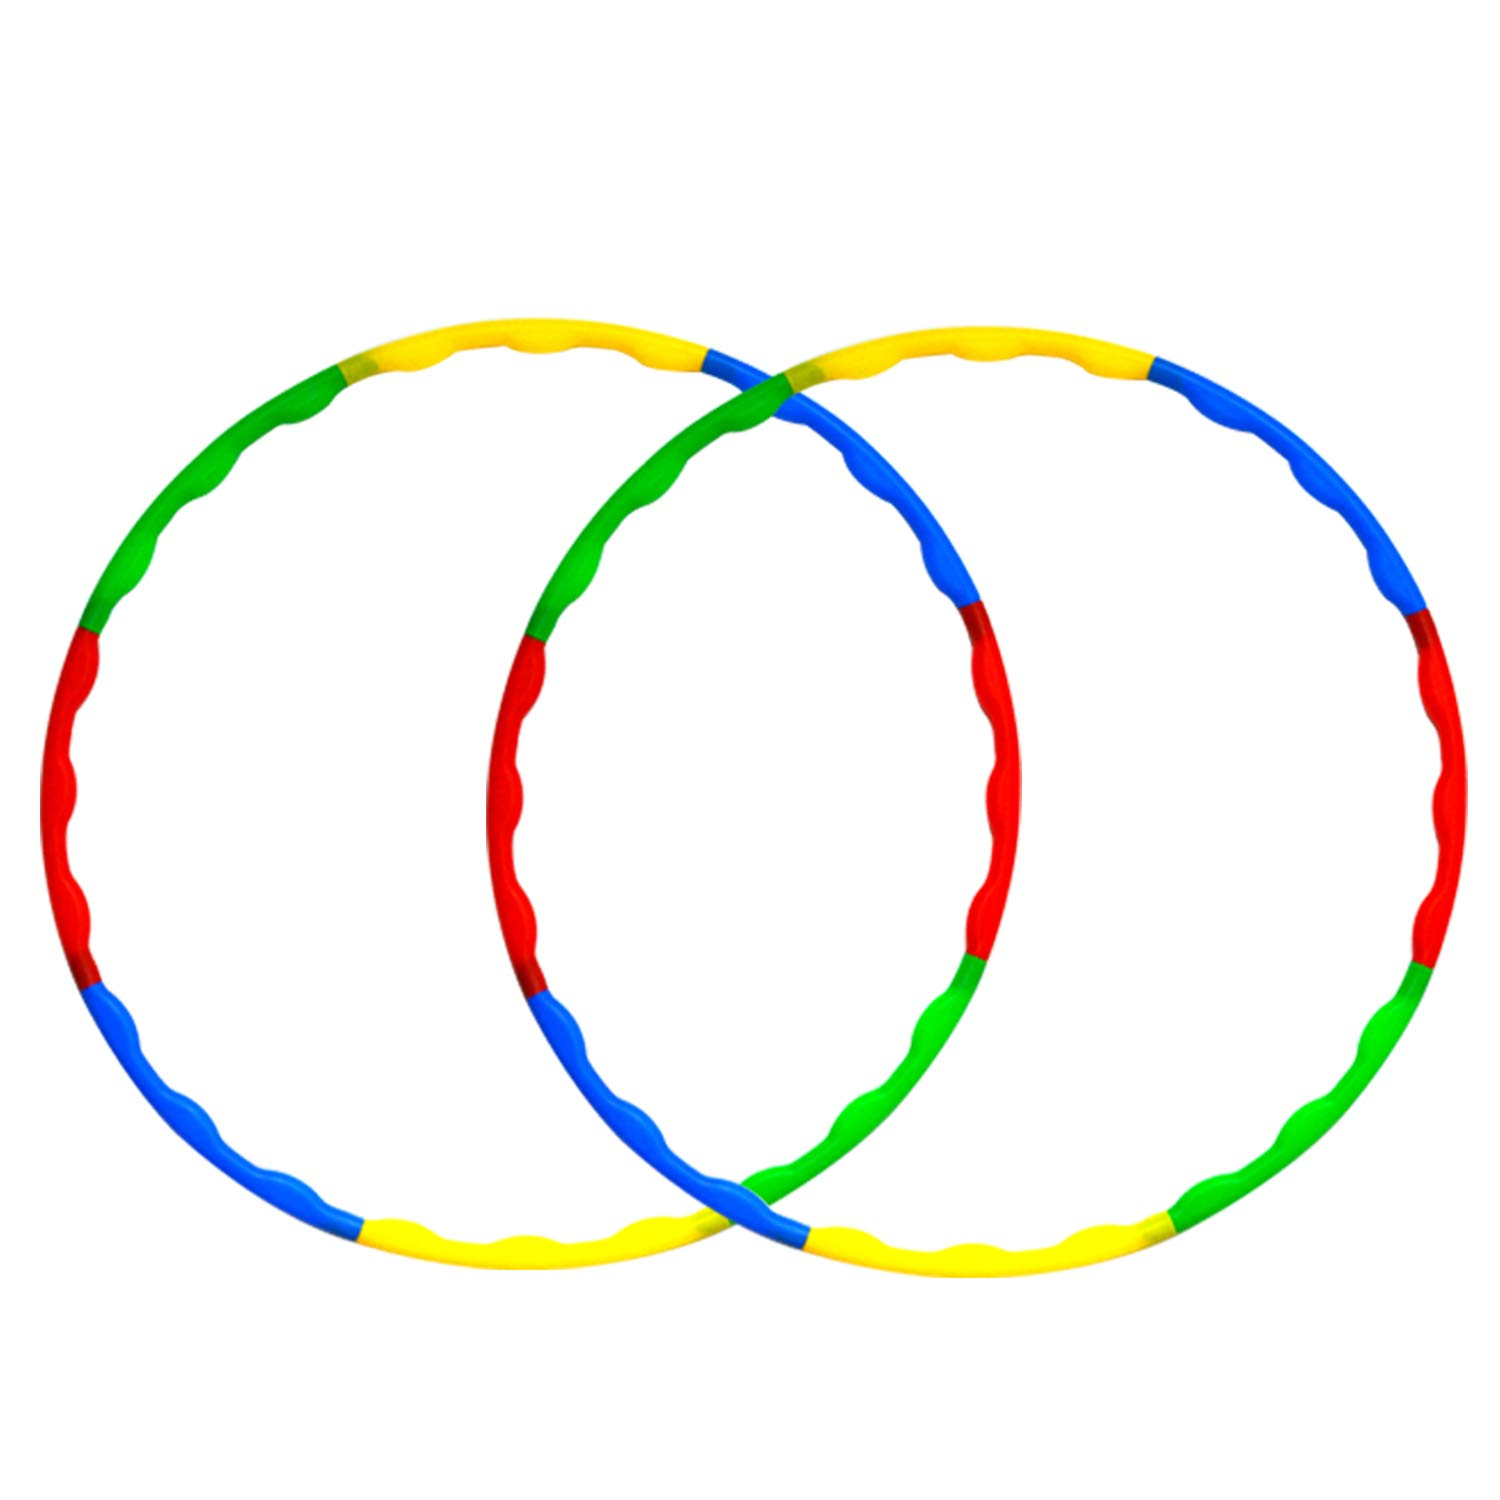 Toy Hula Bulk - Adjustable Weighted & Size Plastic Hoops for Kids and Adults Sports Playing, 32 Inch 8 Sections Hoola Hoop - 2 Pack